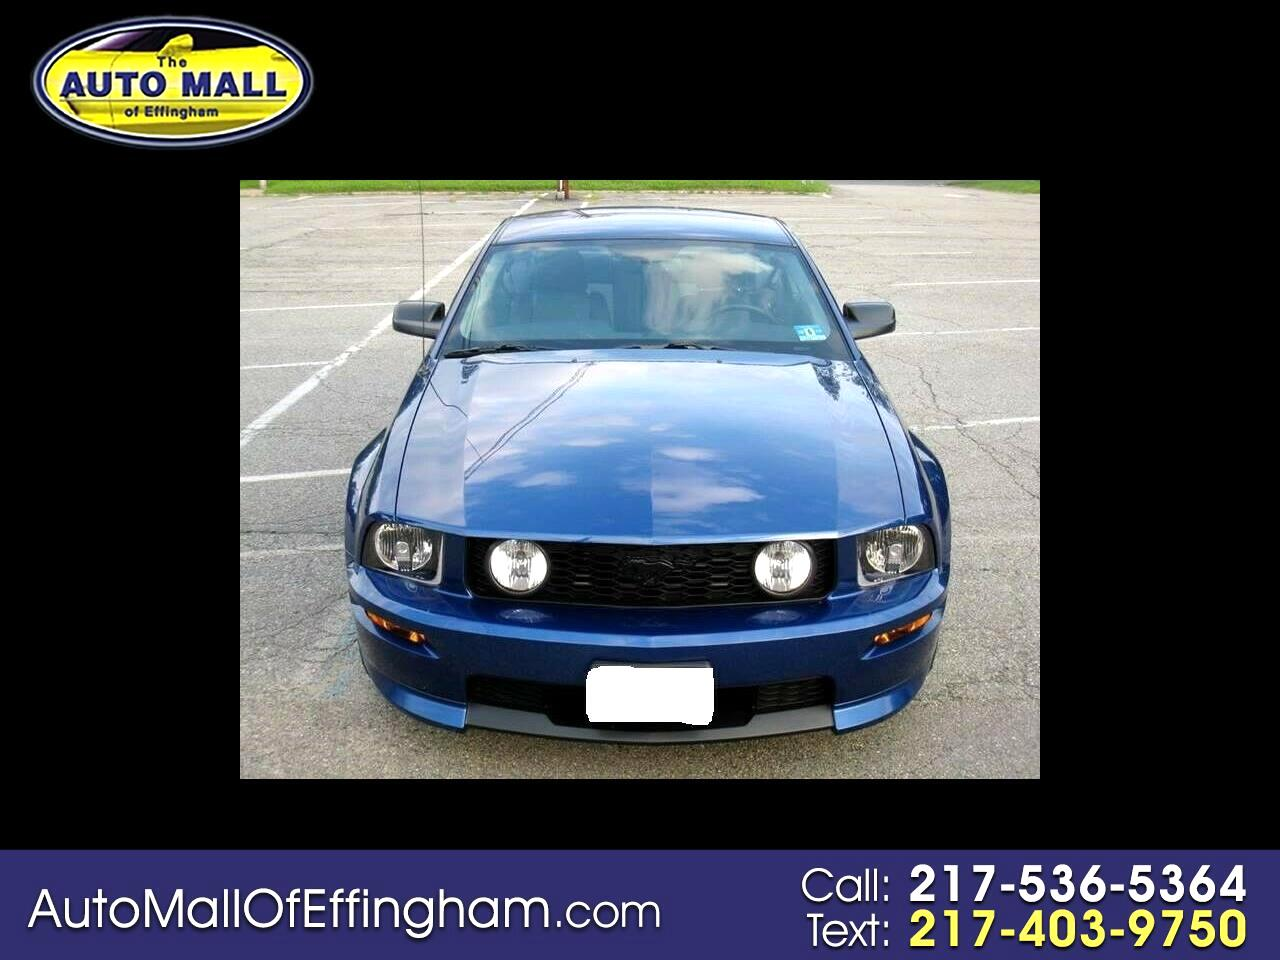 Ford Mustang 2dr Cpe GT Deluxe 2008